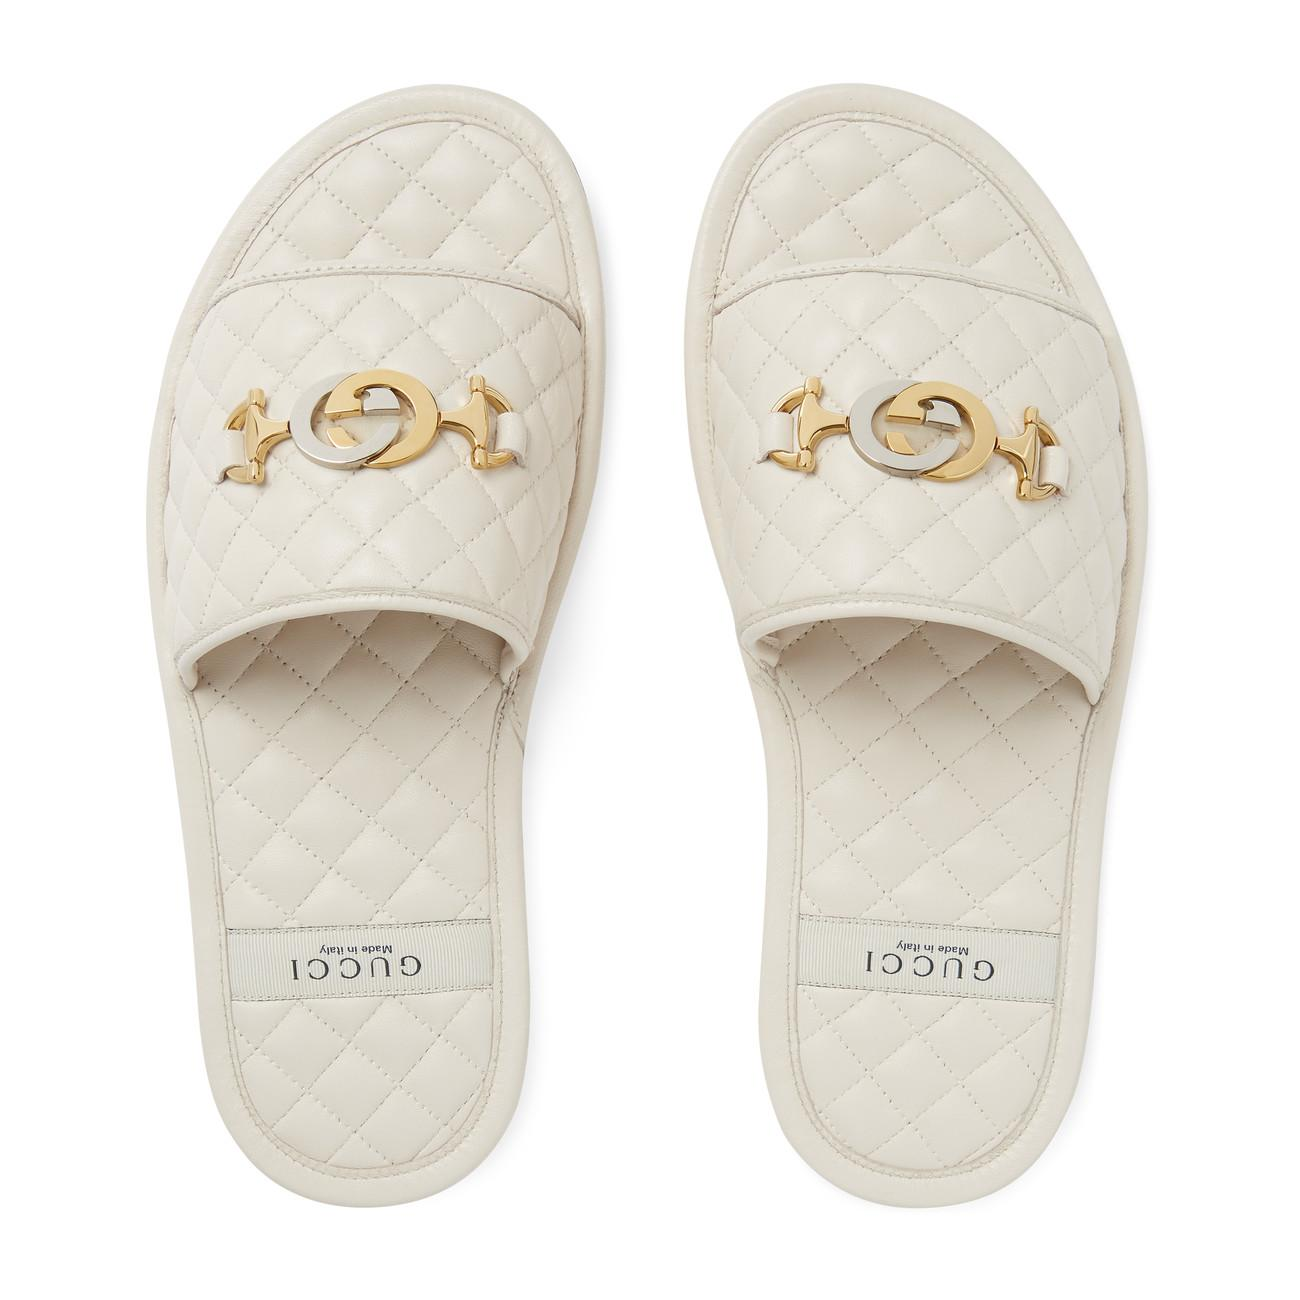 c670d394d Gucci - White Quilted Slide Sandal With Interlocking G Horsebit - Lyst.  View fullscreen